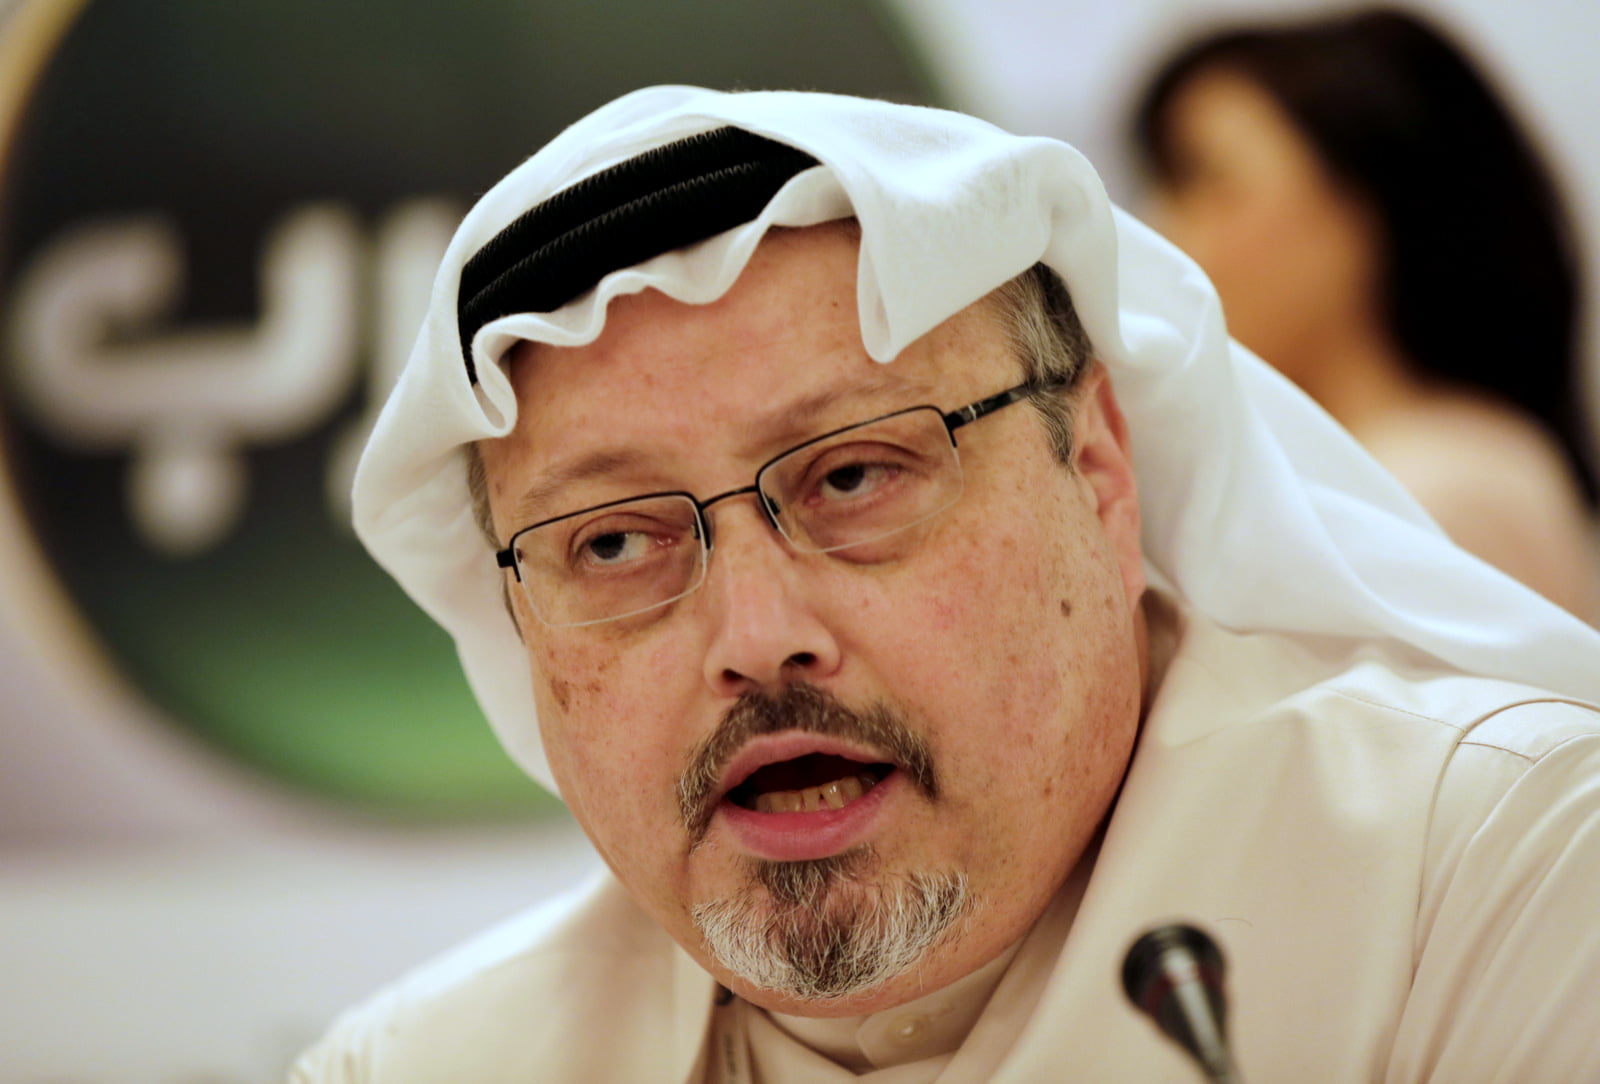 Jamal Khashoggi speaks during a press conference in Bahrain, Dec. 15, 2014. Hasan Jamali | AP